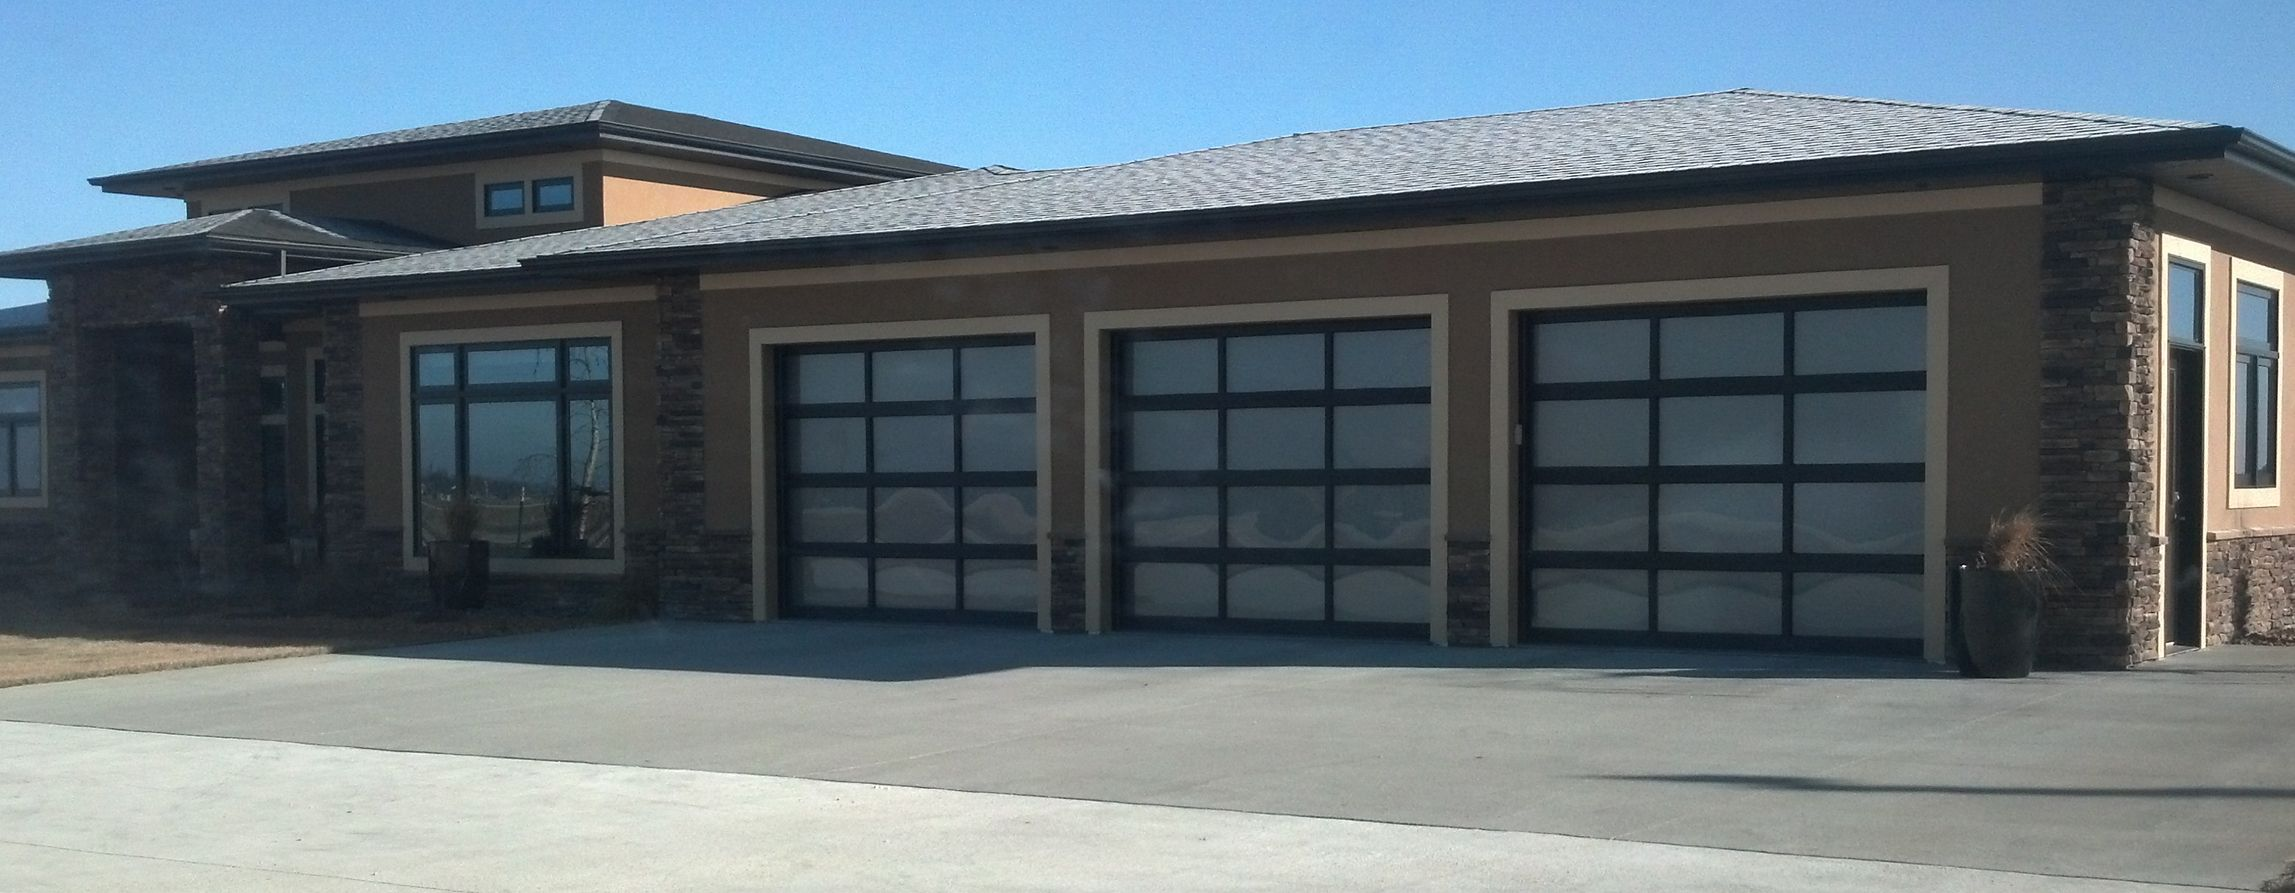 New garage door sales installation phoenix parker doors for New garage